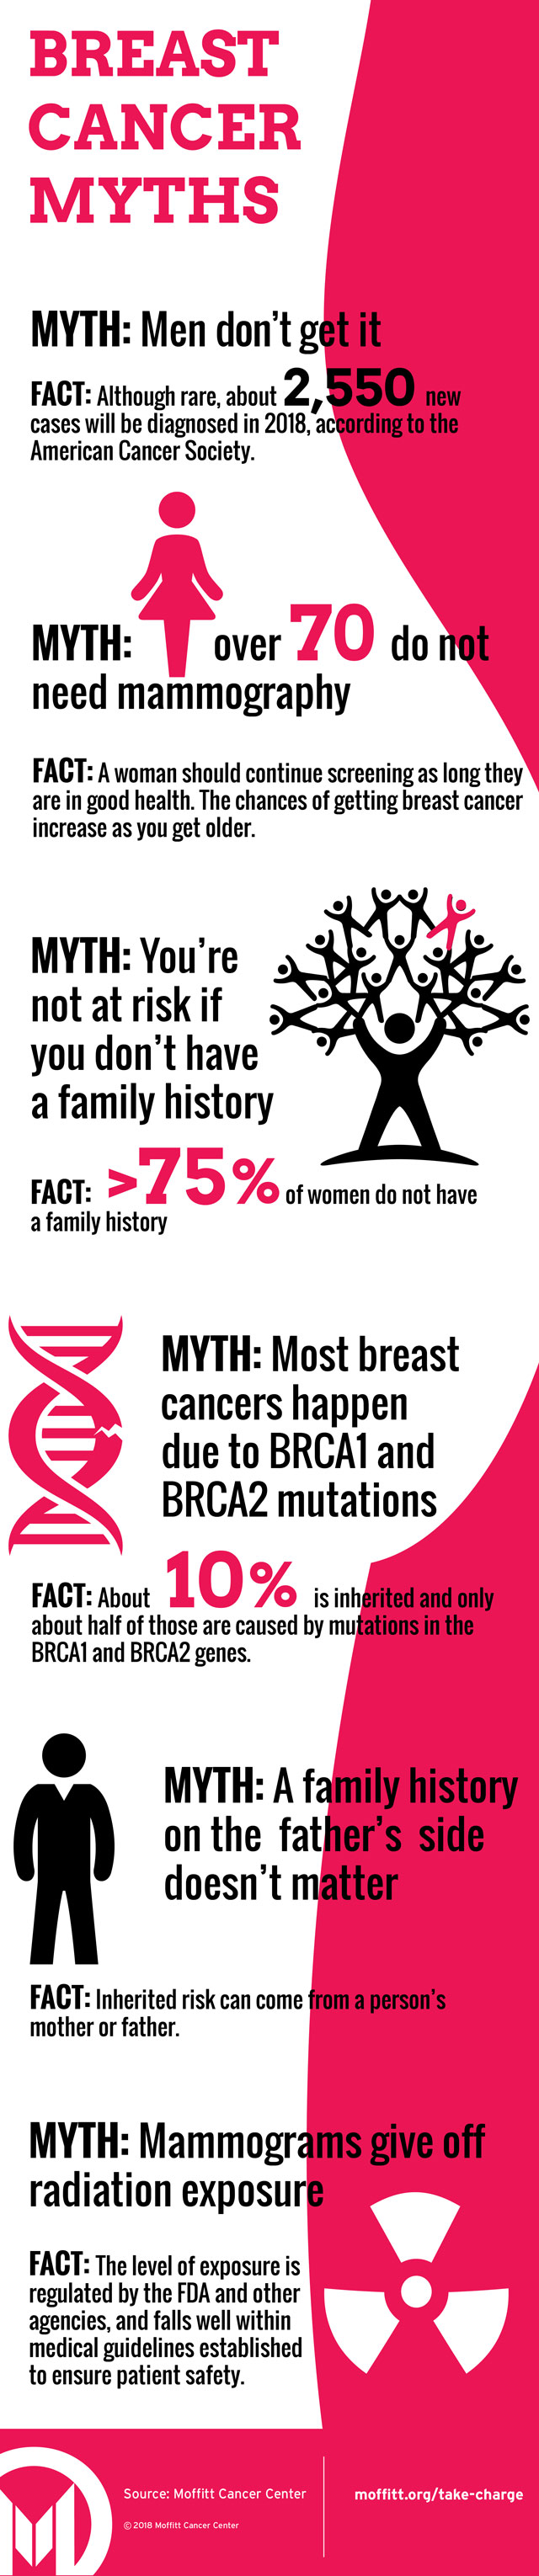 Infographic: Facts and Myths About Breast Cancer | Moffitt